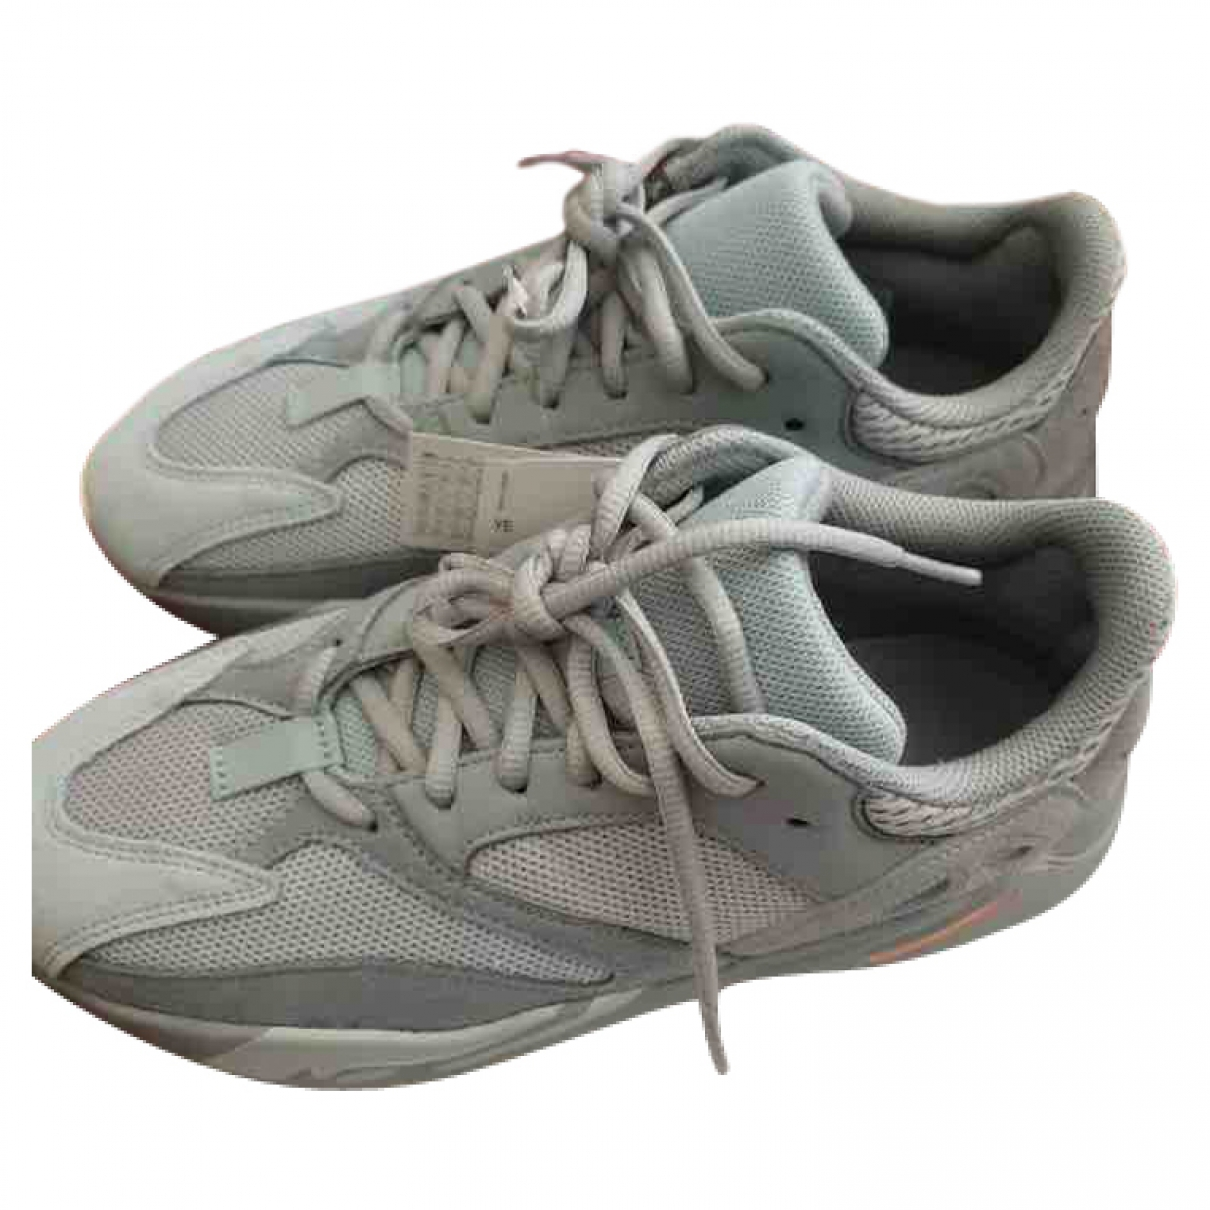 Yeezy X Adidas - Baskets Boost 700 V2 pour homme en toile